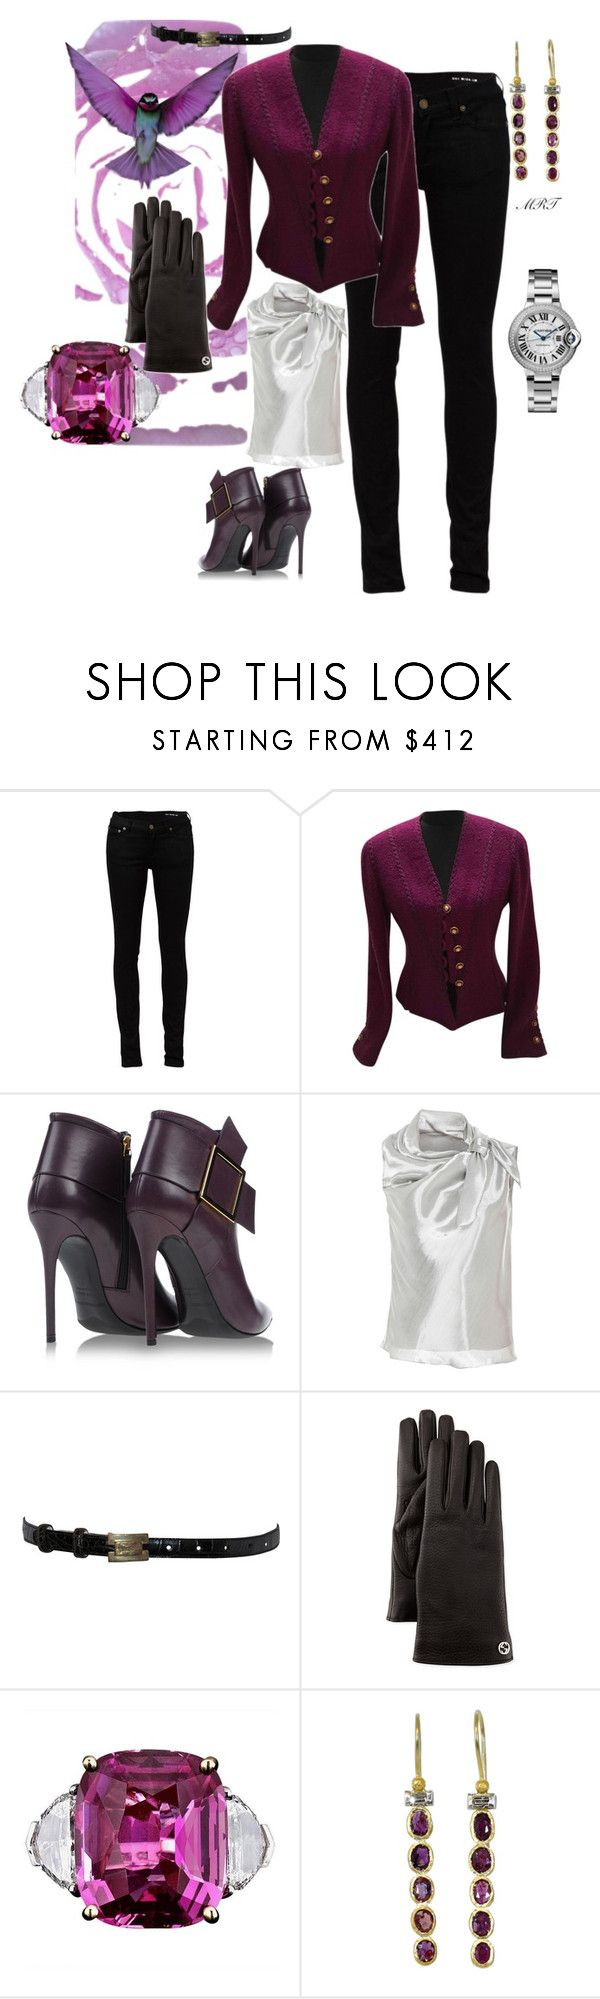 """Aubergine"" by meesh57 on Polyvore featuring Yves Saint Laurent, Chanel, Gianmarco Lorenzi, Donna Karan, Gucci and Boaz Kashi"